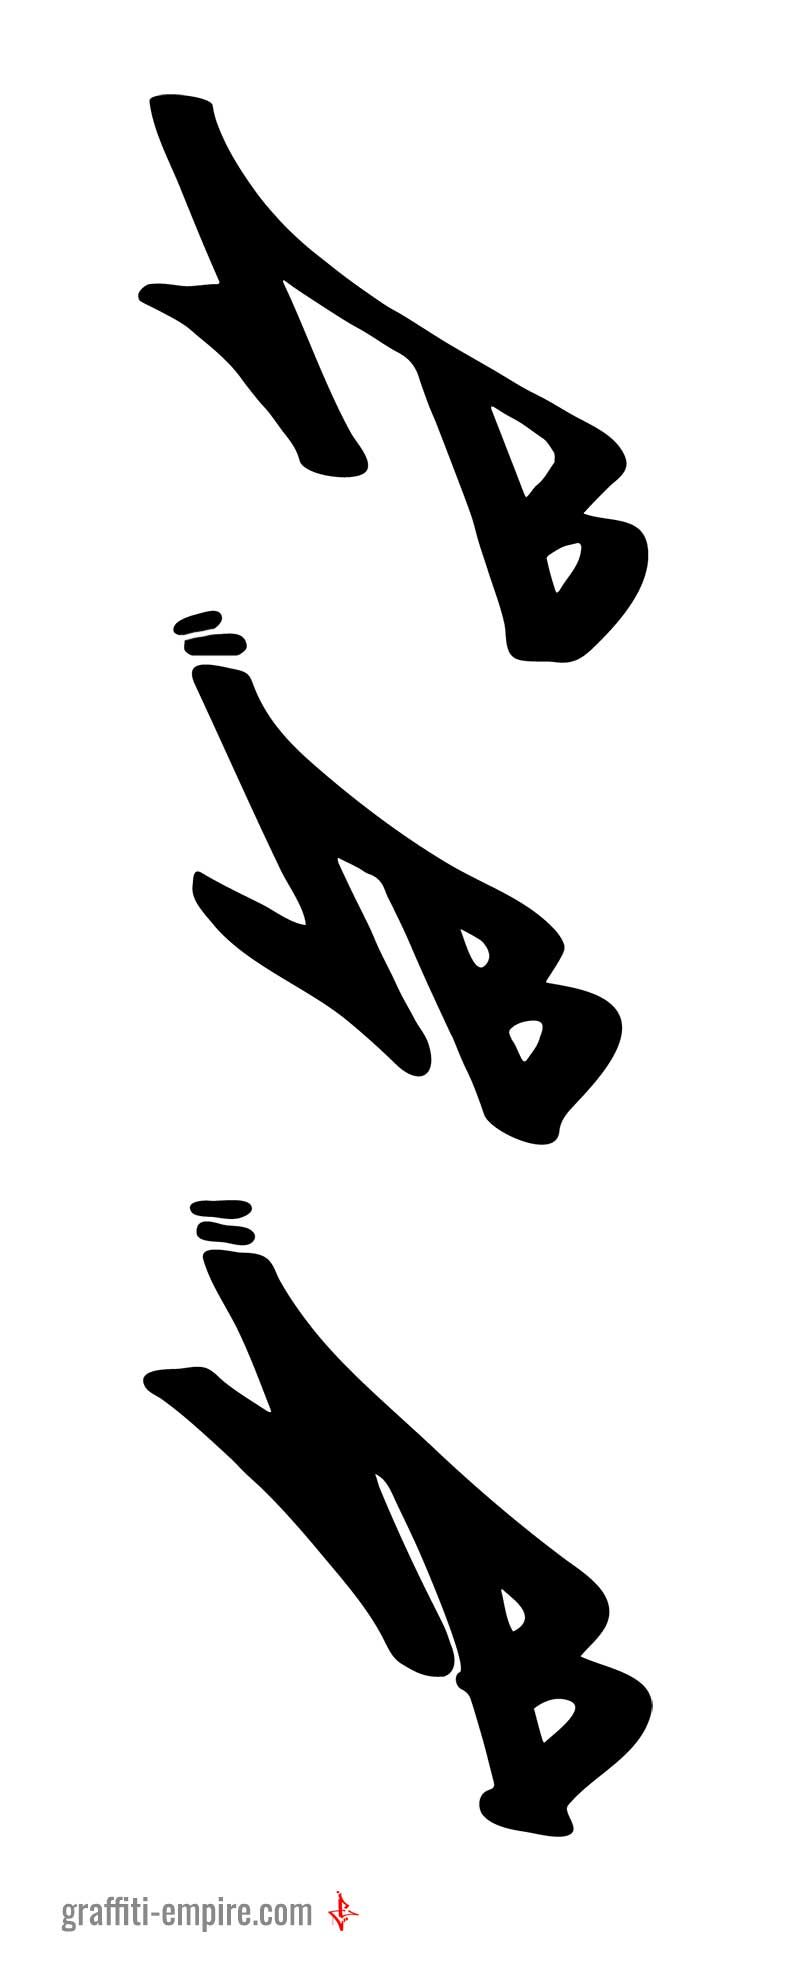 B graffiti tag letter variation graffiti lettering inspiration which one do you like the most 1 2 or 3